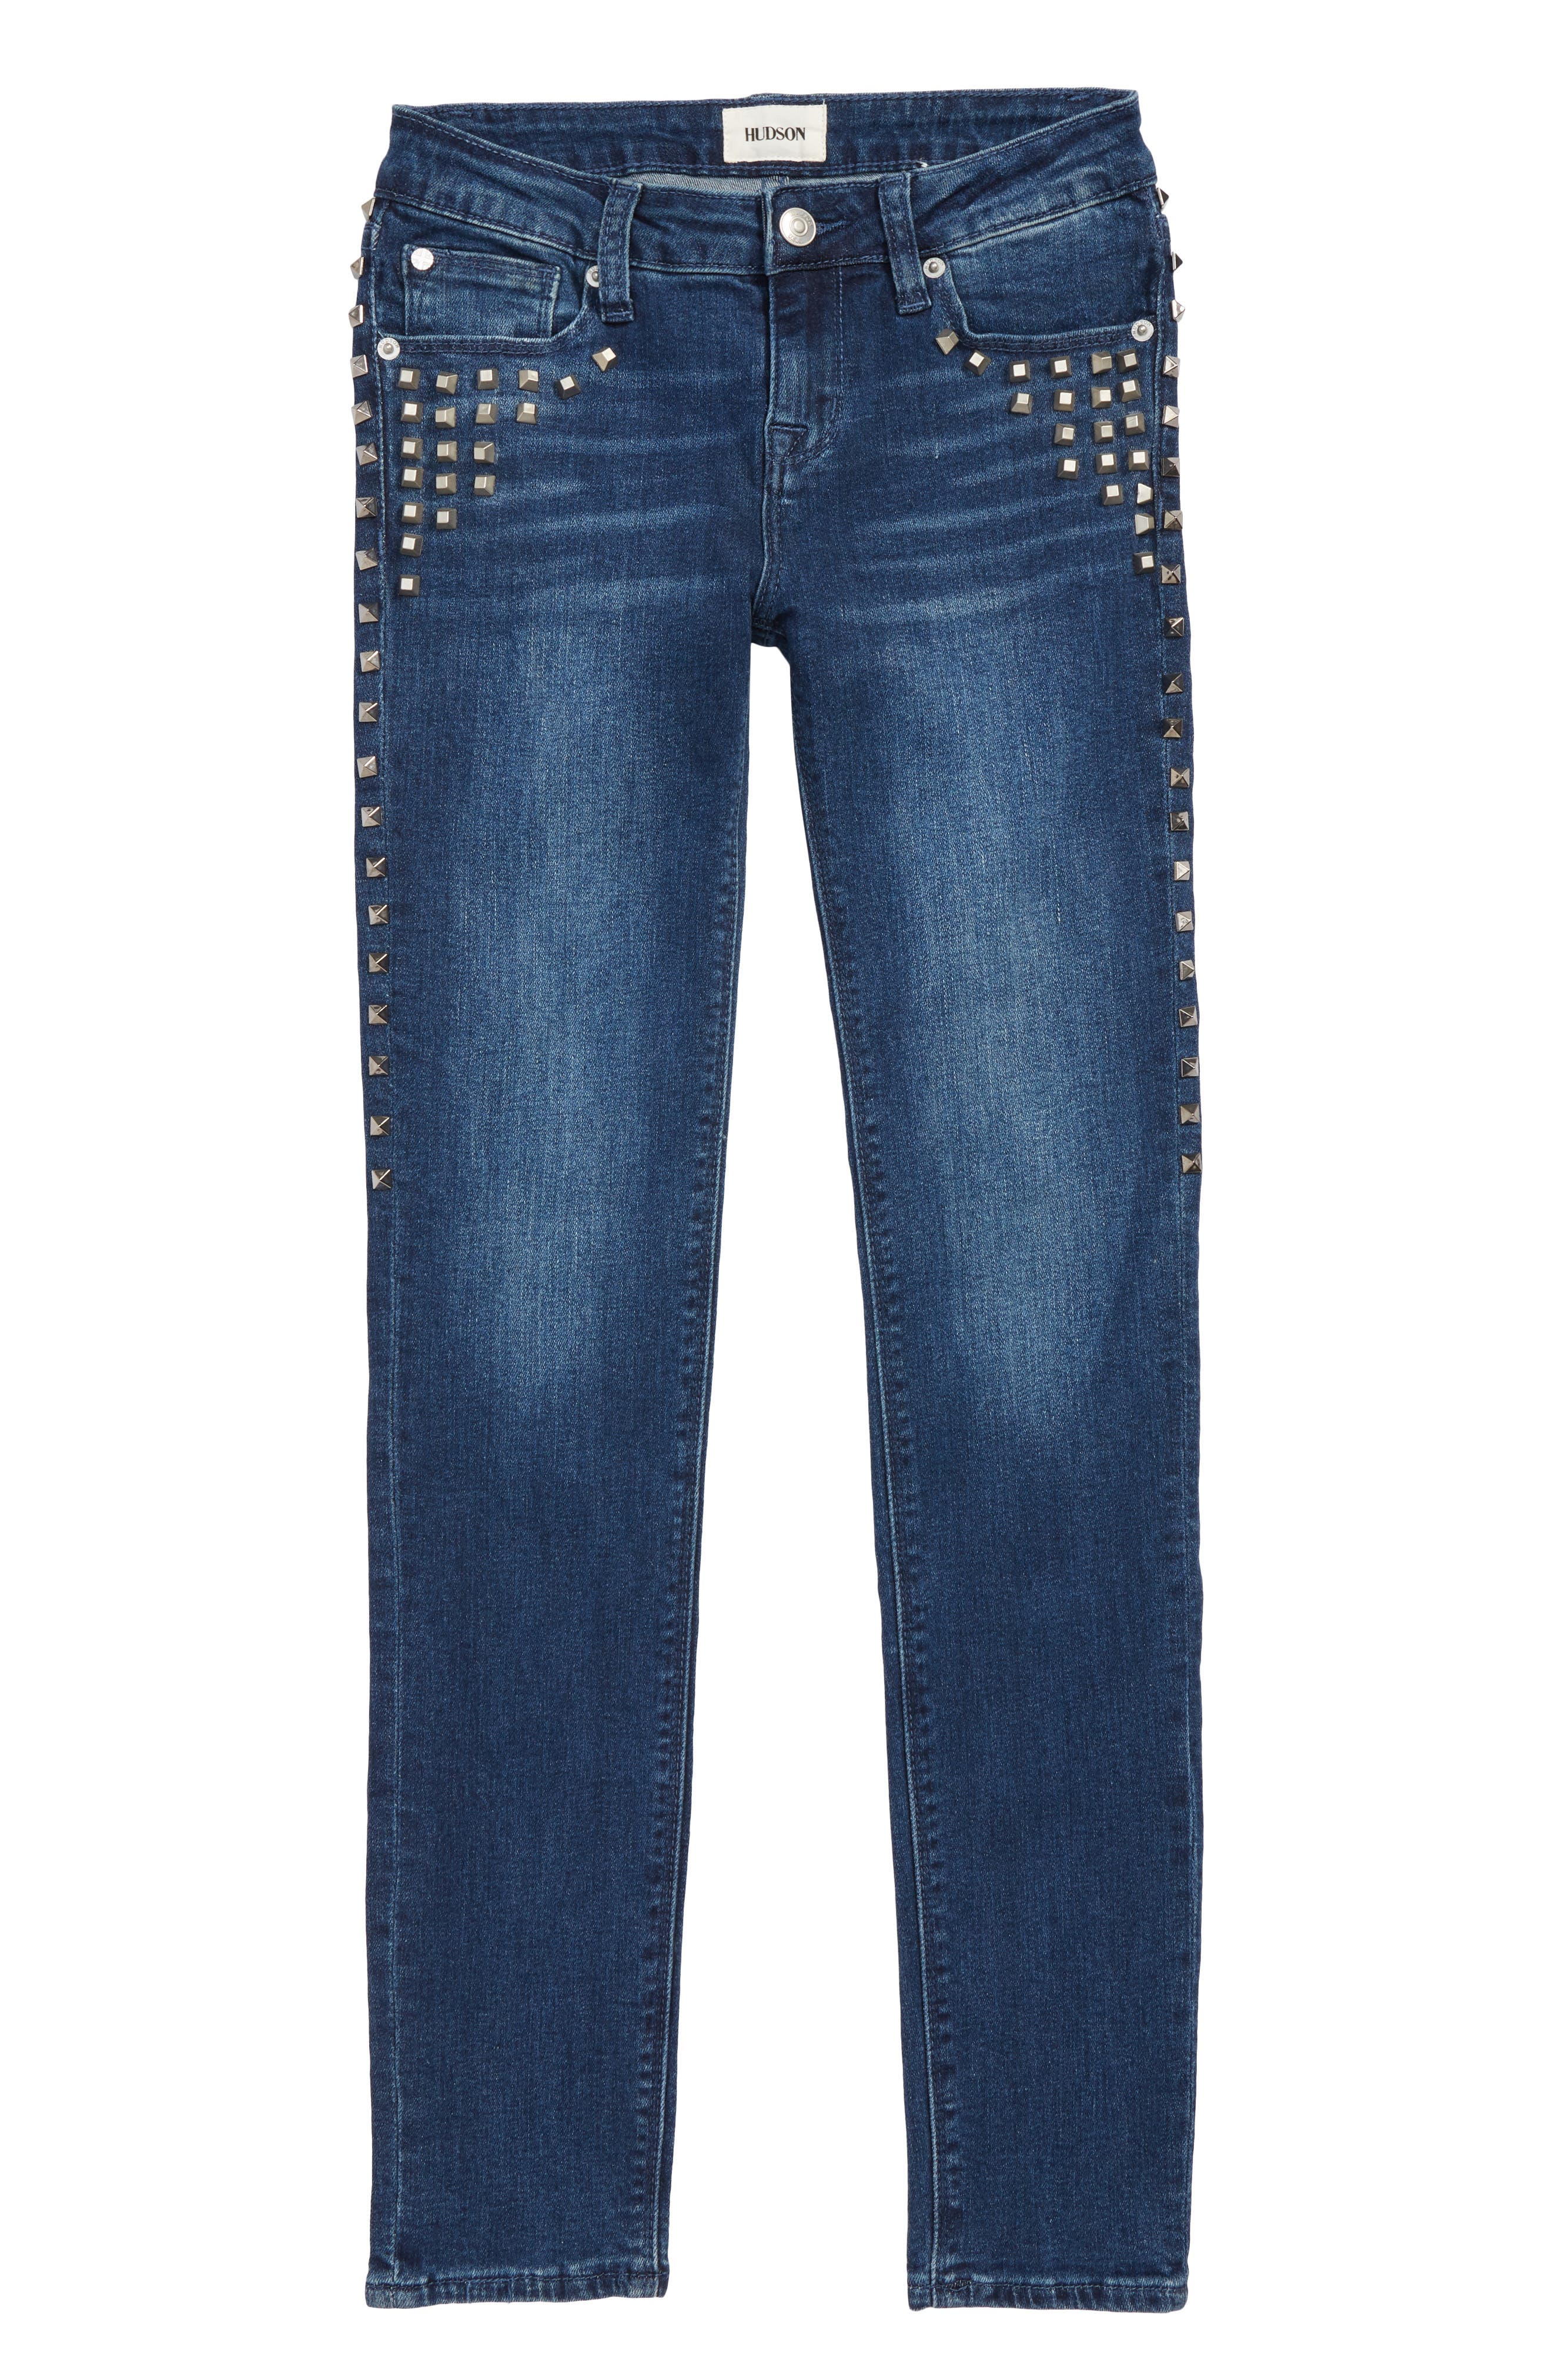 Studded Skinny Jeans,                             Main thumbnail 1, color,                             DARK STONE